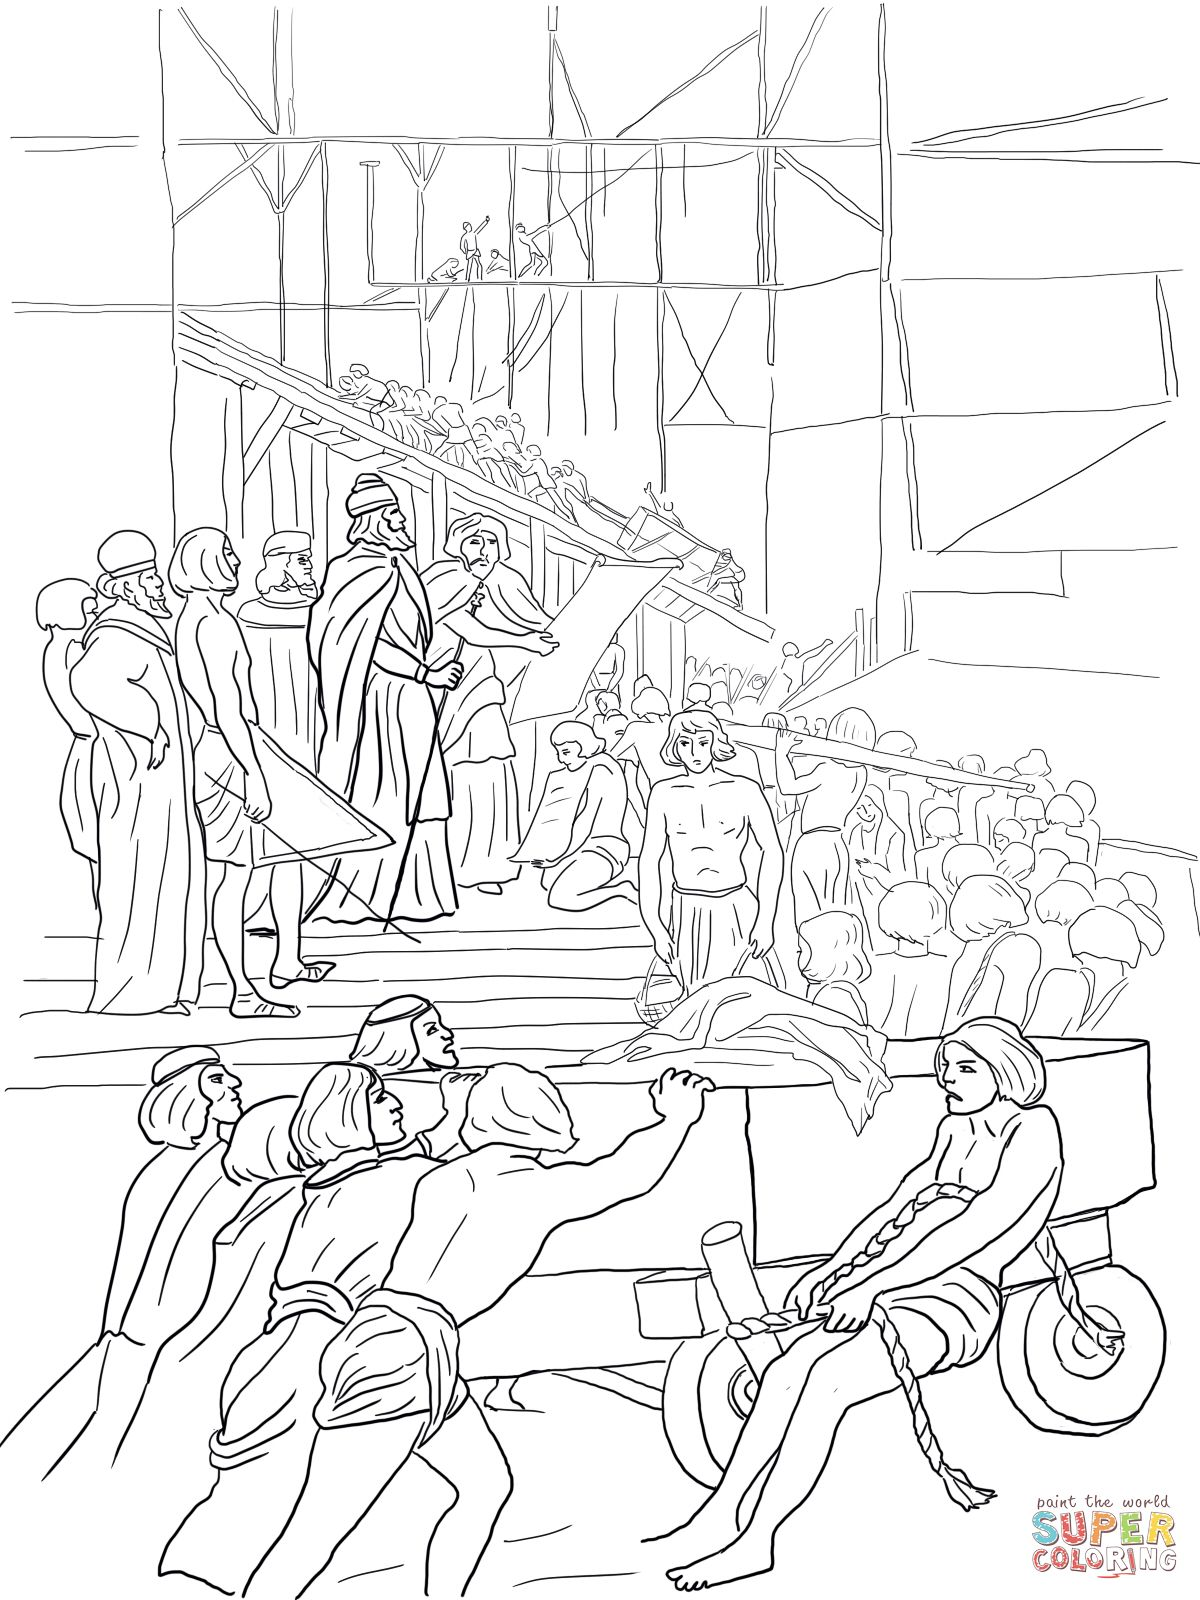 King Solomon Builds The Temple Coloring Page Supercoloring Com